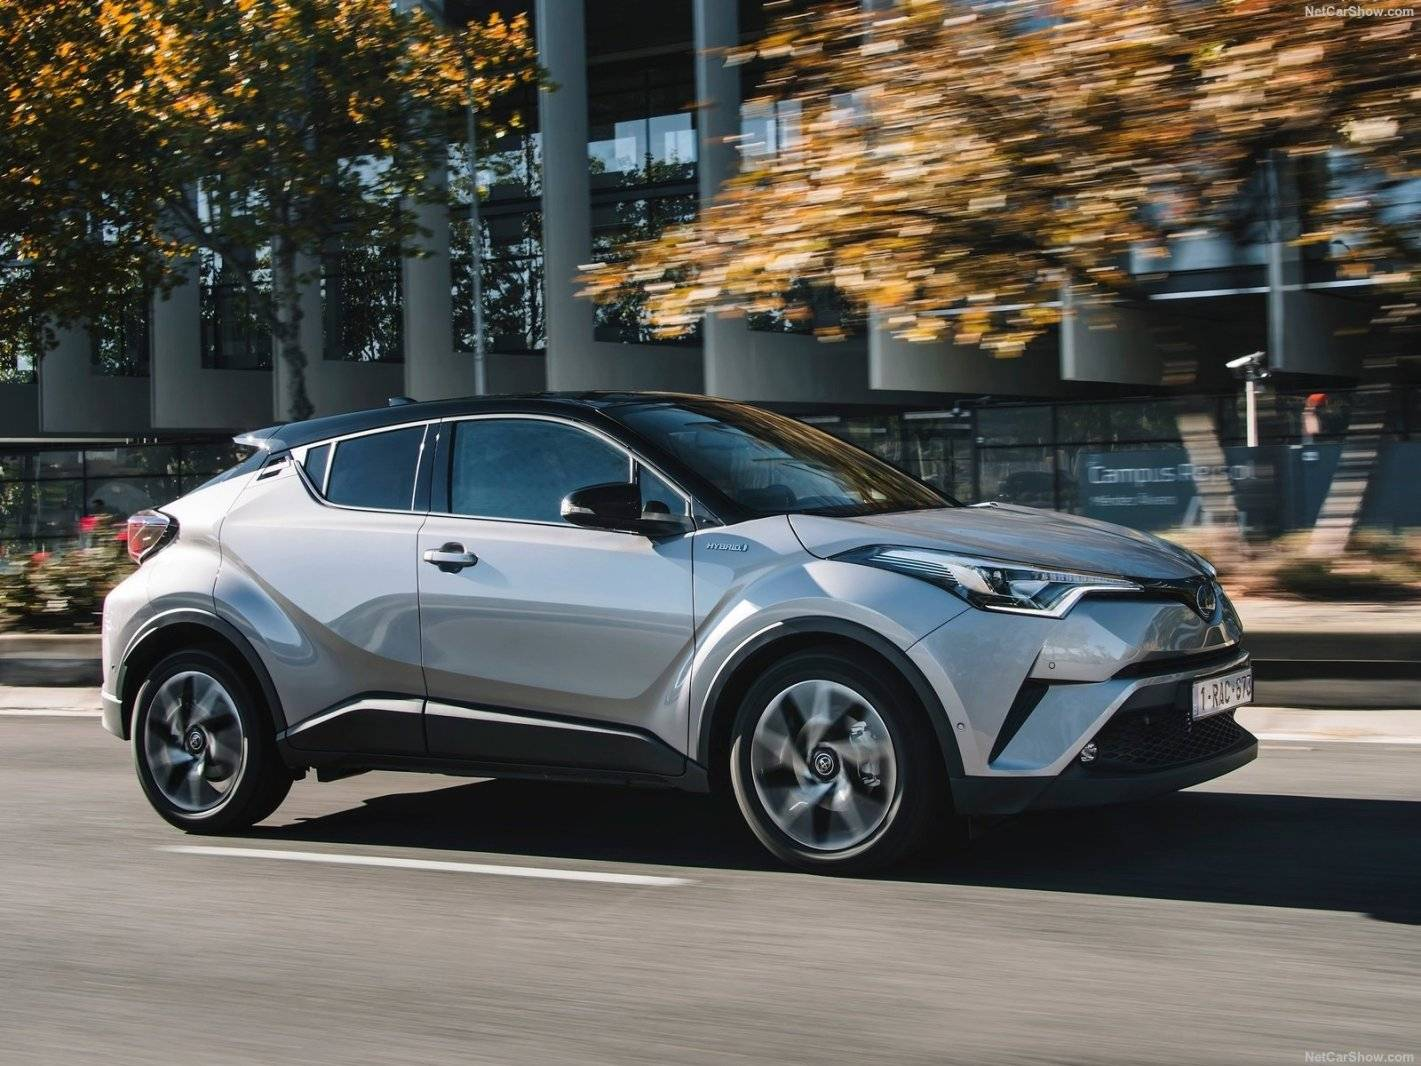 toyota chr lease with Autotest Toyota C Hr on Autotest Toyota C Hr in addition 2018 Toyota C Hr Paint Color Options additionally Chr Visione Futuro additionally 2018 Lexus F Sport Price moreover Peugeot 3008 Gt Line En Details Et En Images.